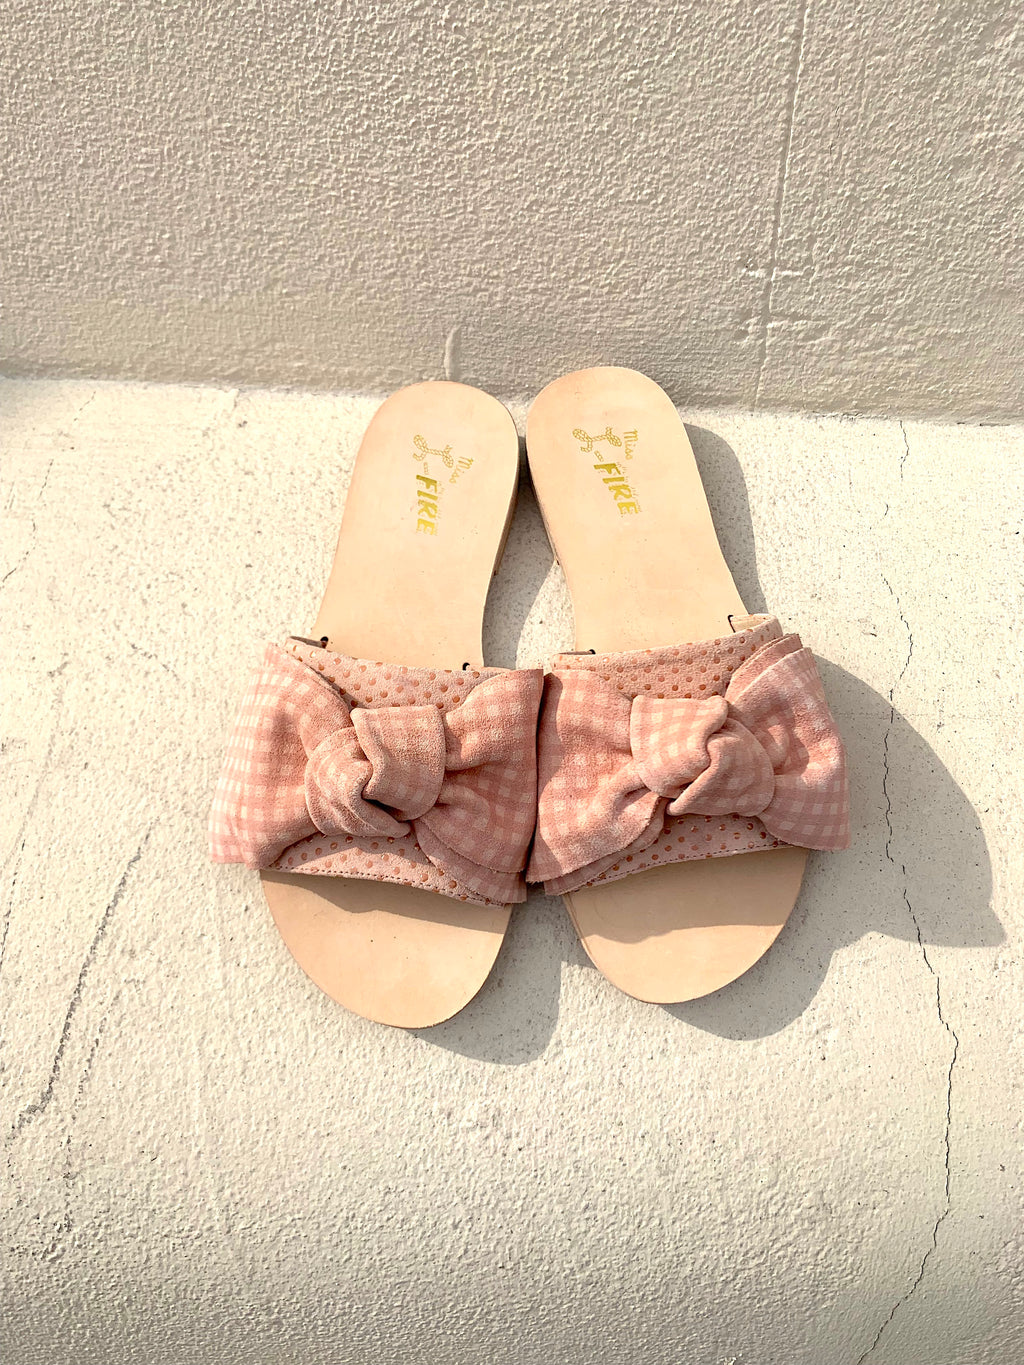 Serafina flat leather slide with bow detail in pink gingham suede. Designed in London by Miss L Fire